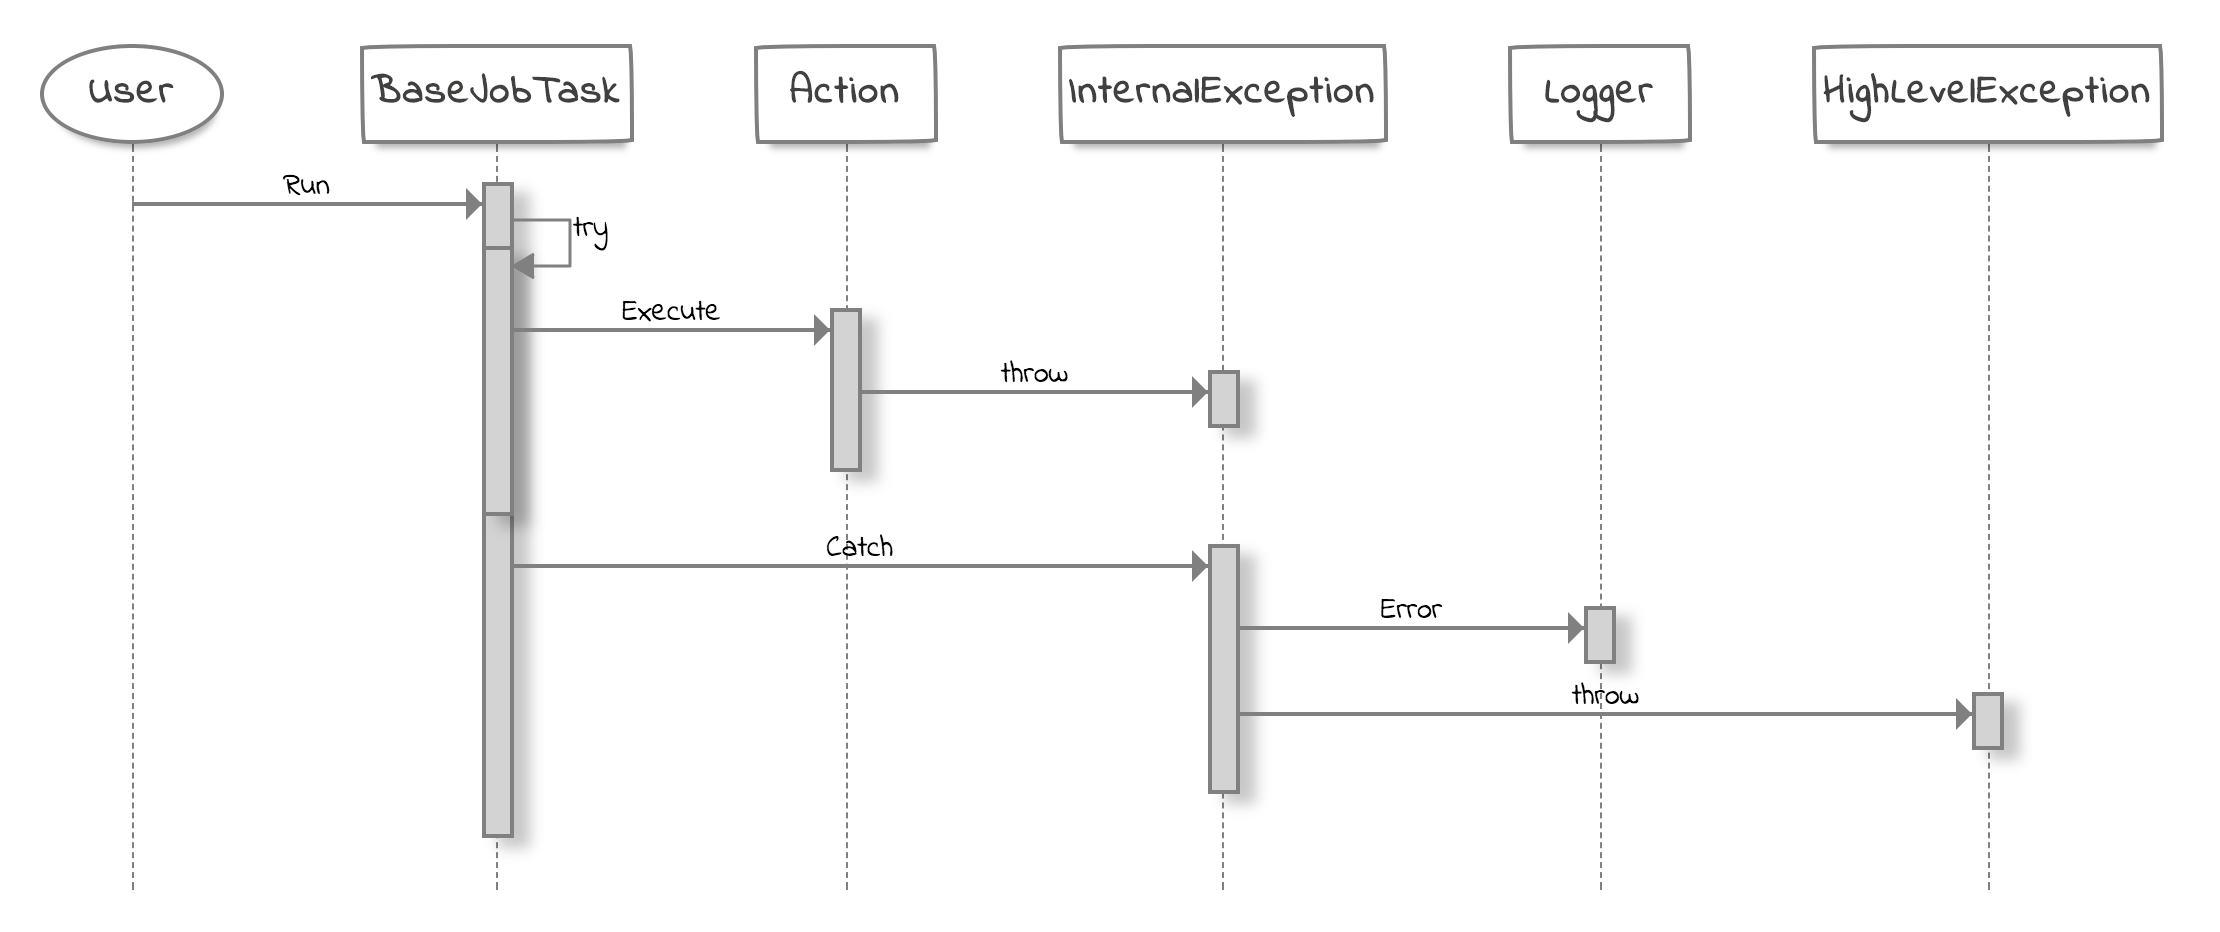 a typical exception handling logic